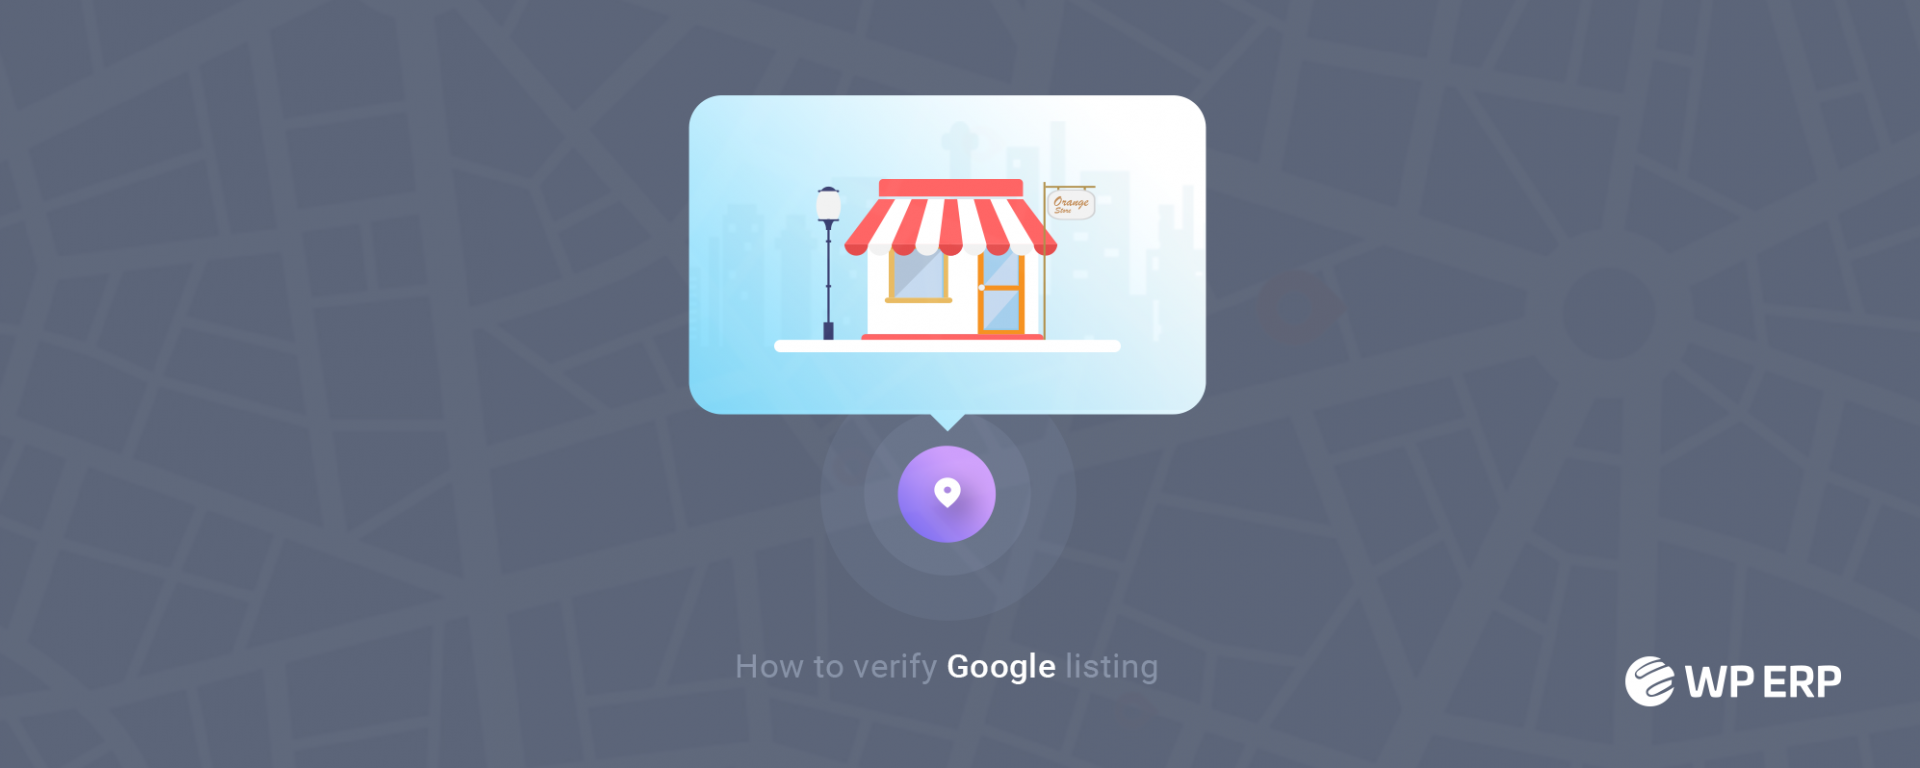 How to verify Google listing using Google My Business